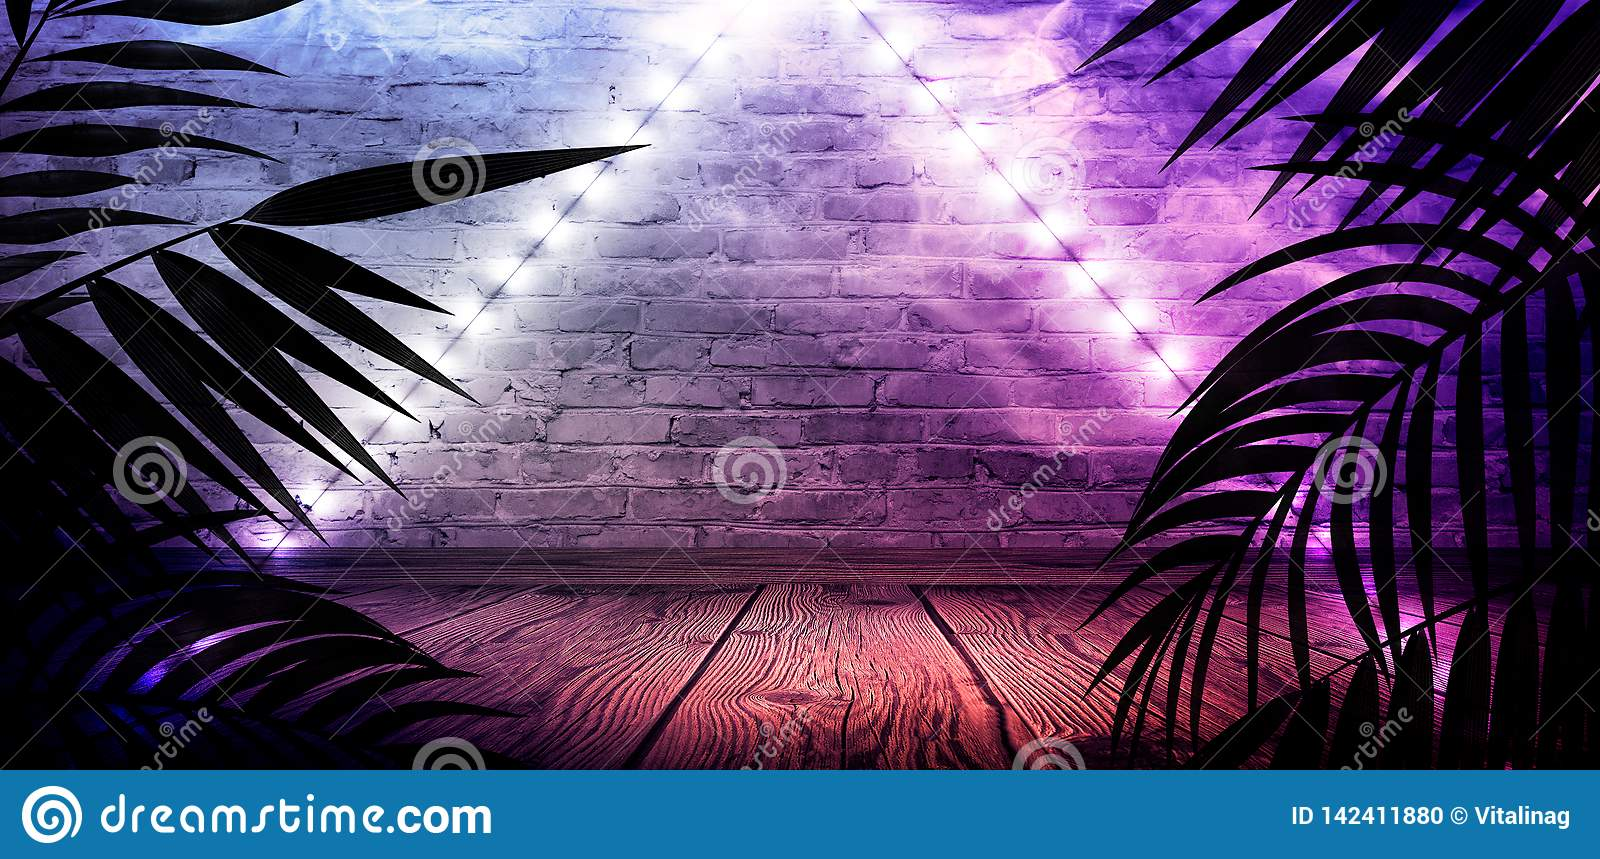 Background of the dark room, tunnel, corridor, neon light, lamps, tropical leaves.